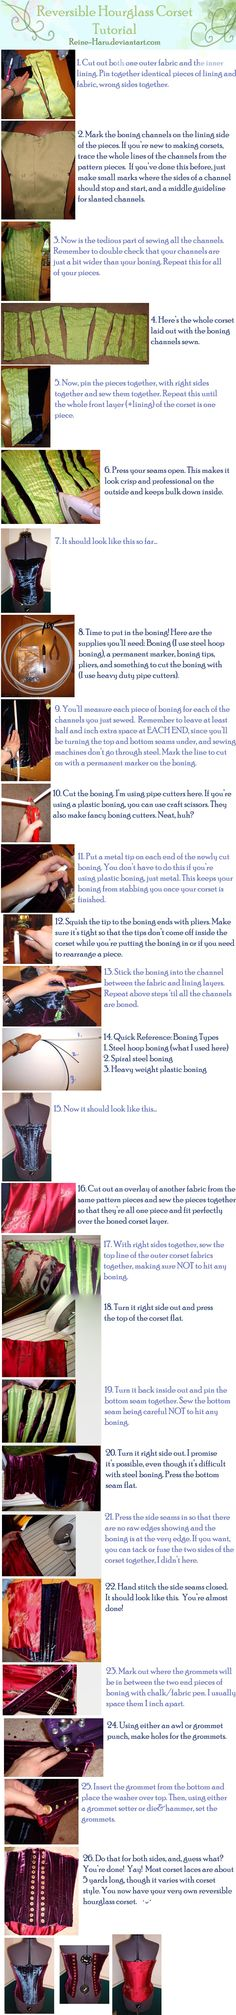 corset tutorial Reversible Corset Tutorial by ~Reine-Haru on deviantART While corsets were not common fashion in early Tudor period, a few pieces have been documented in that period. If you want a nice one thats reversible, this is a good tutorial Corset Tutorial, Cosplay Tutorial, Cosplay Diy, Diy Clothing, Sewing Clothes, Clothing Patterns, Sewing Patterns, Lingerie Patterns, Techniques Couture